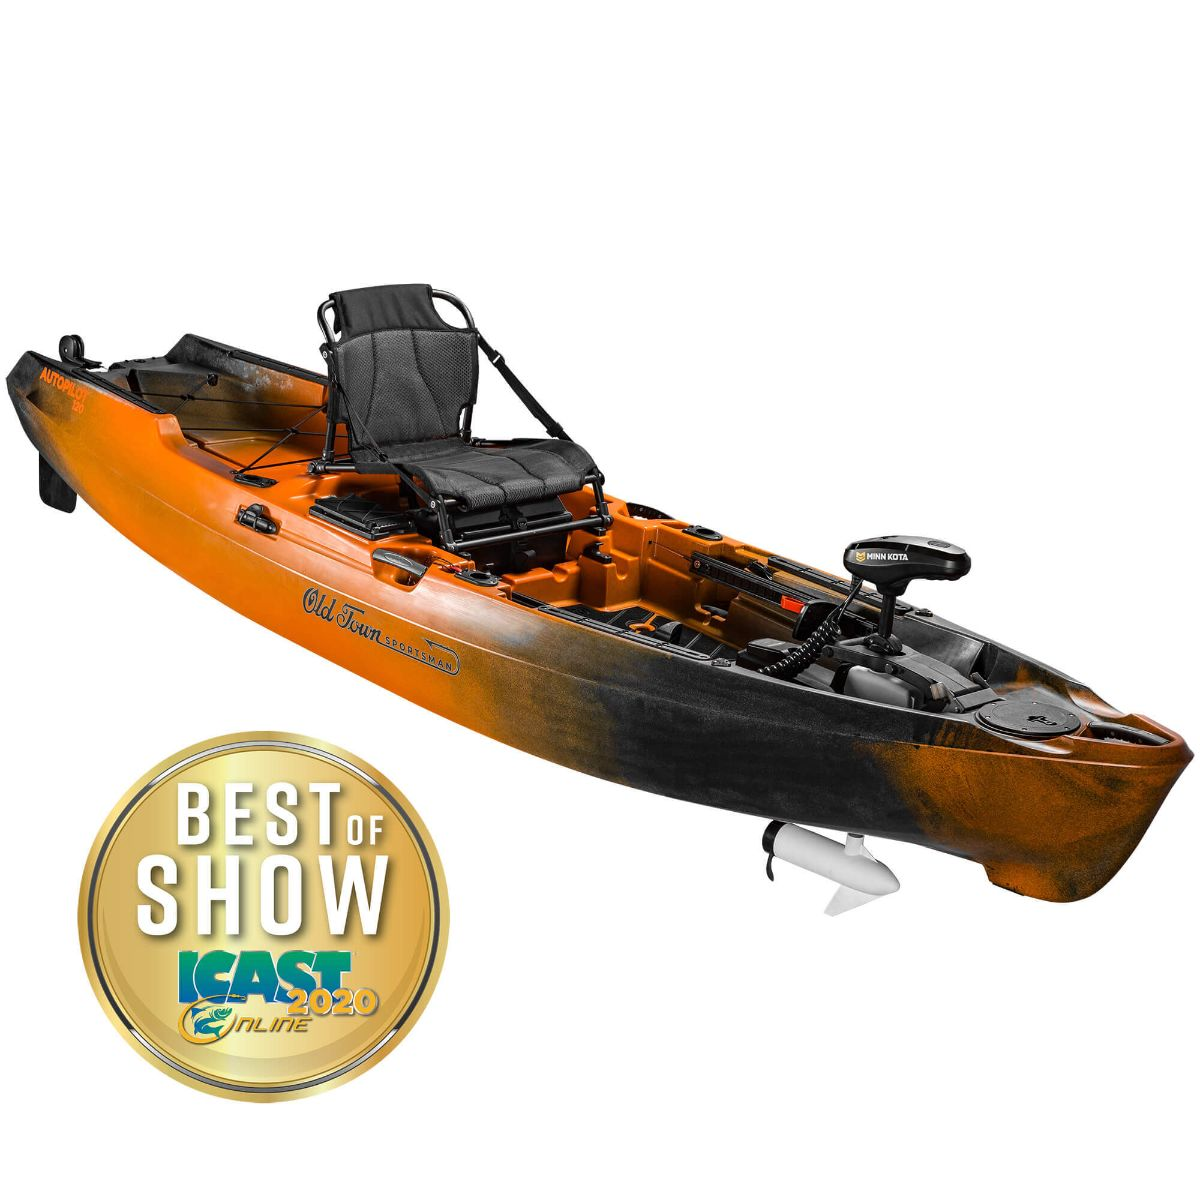 2022 Old Town Canoes and Kayaks Sportsman AutoPilot 120